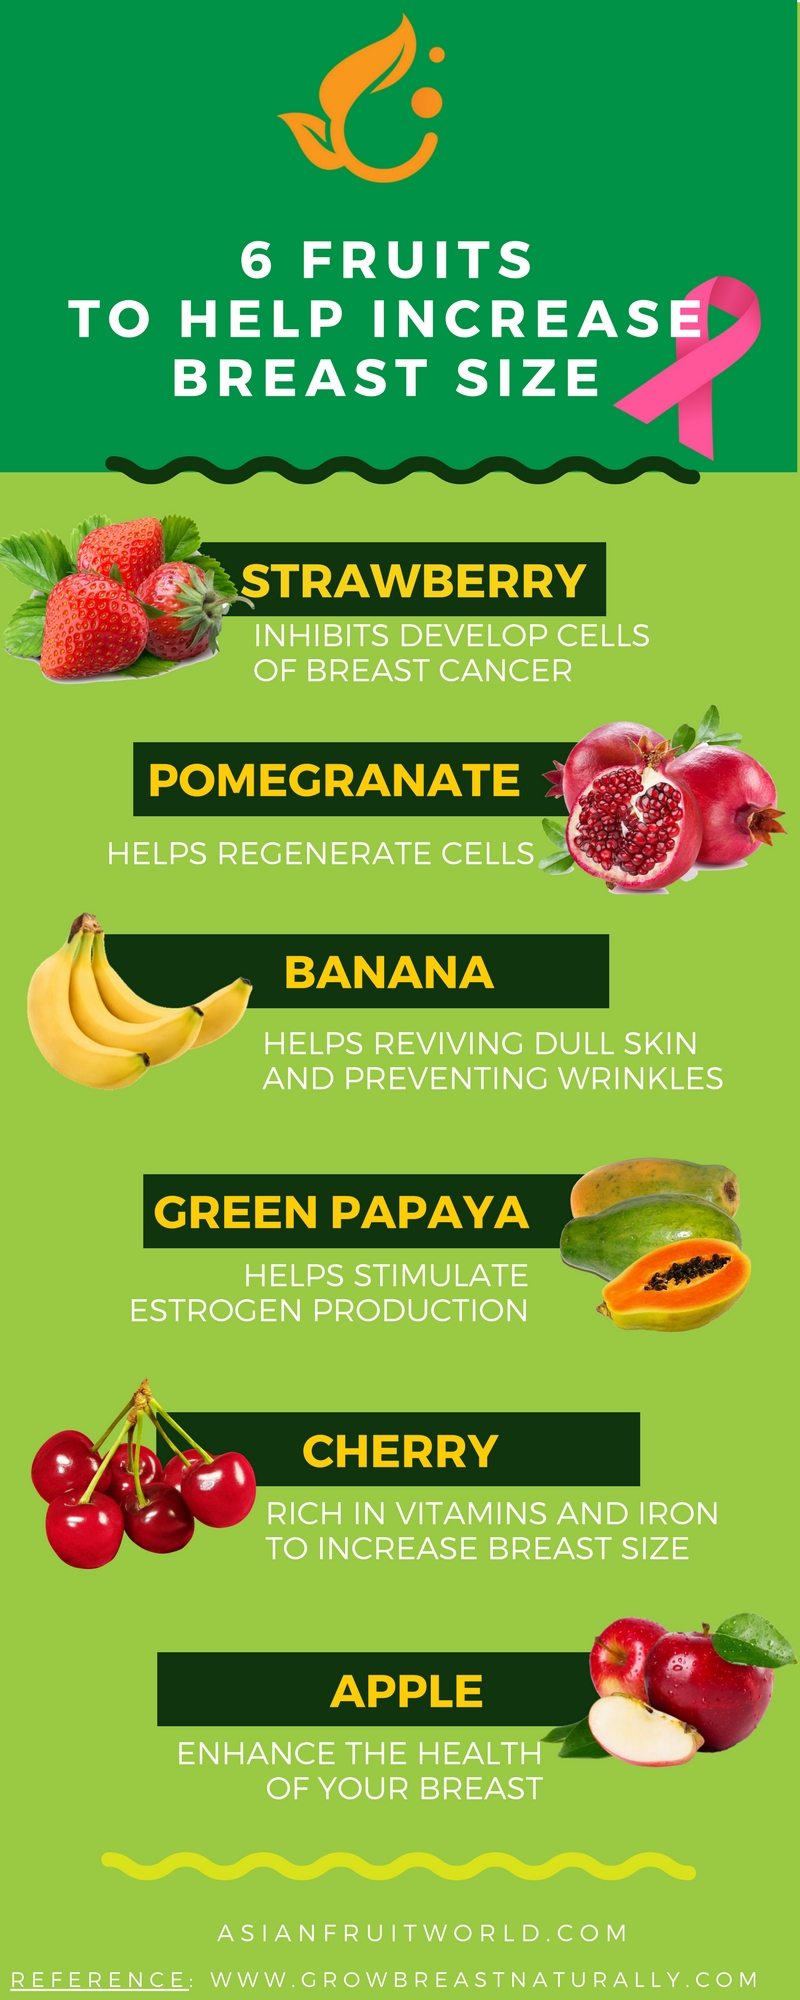 6 fruits to help increase breast size infographic